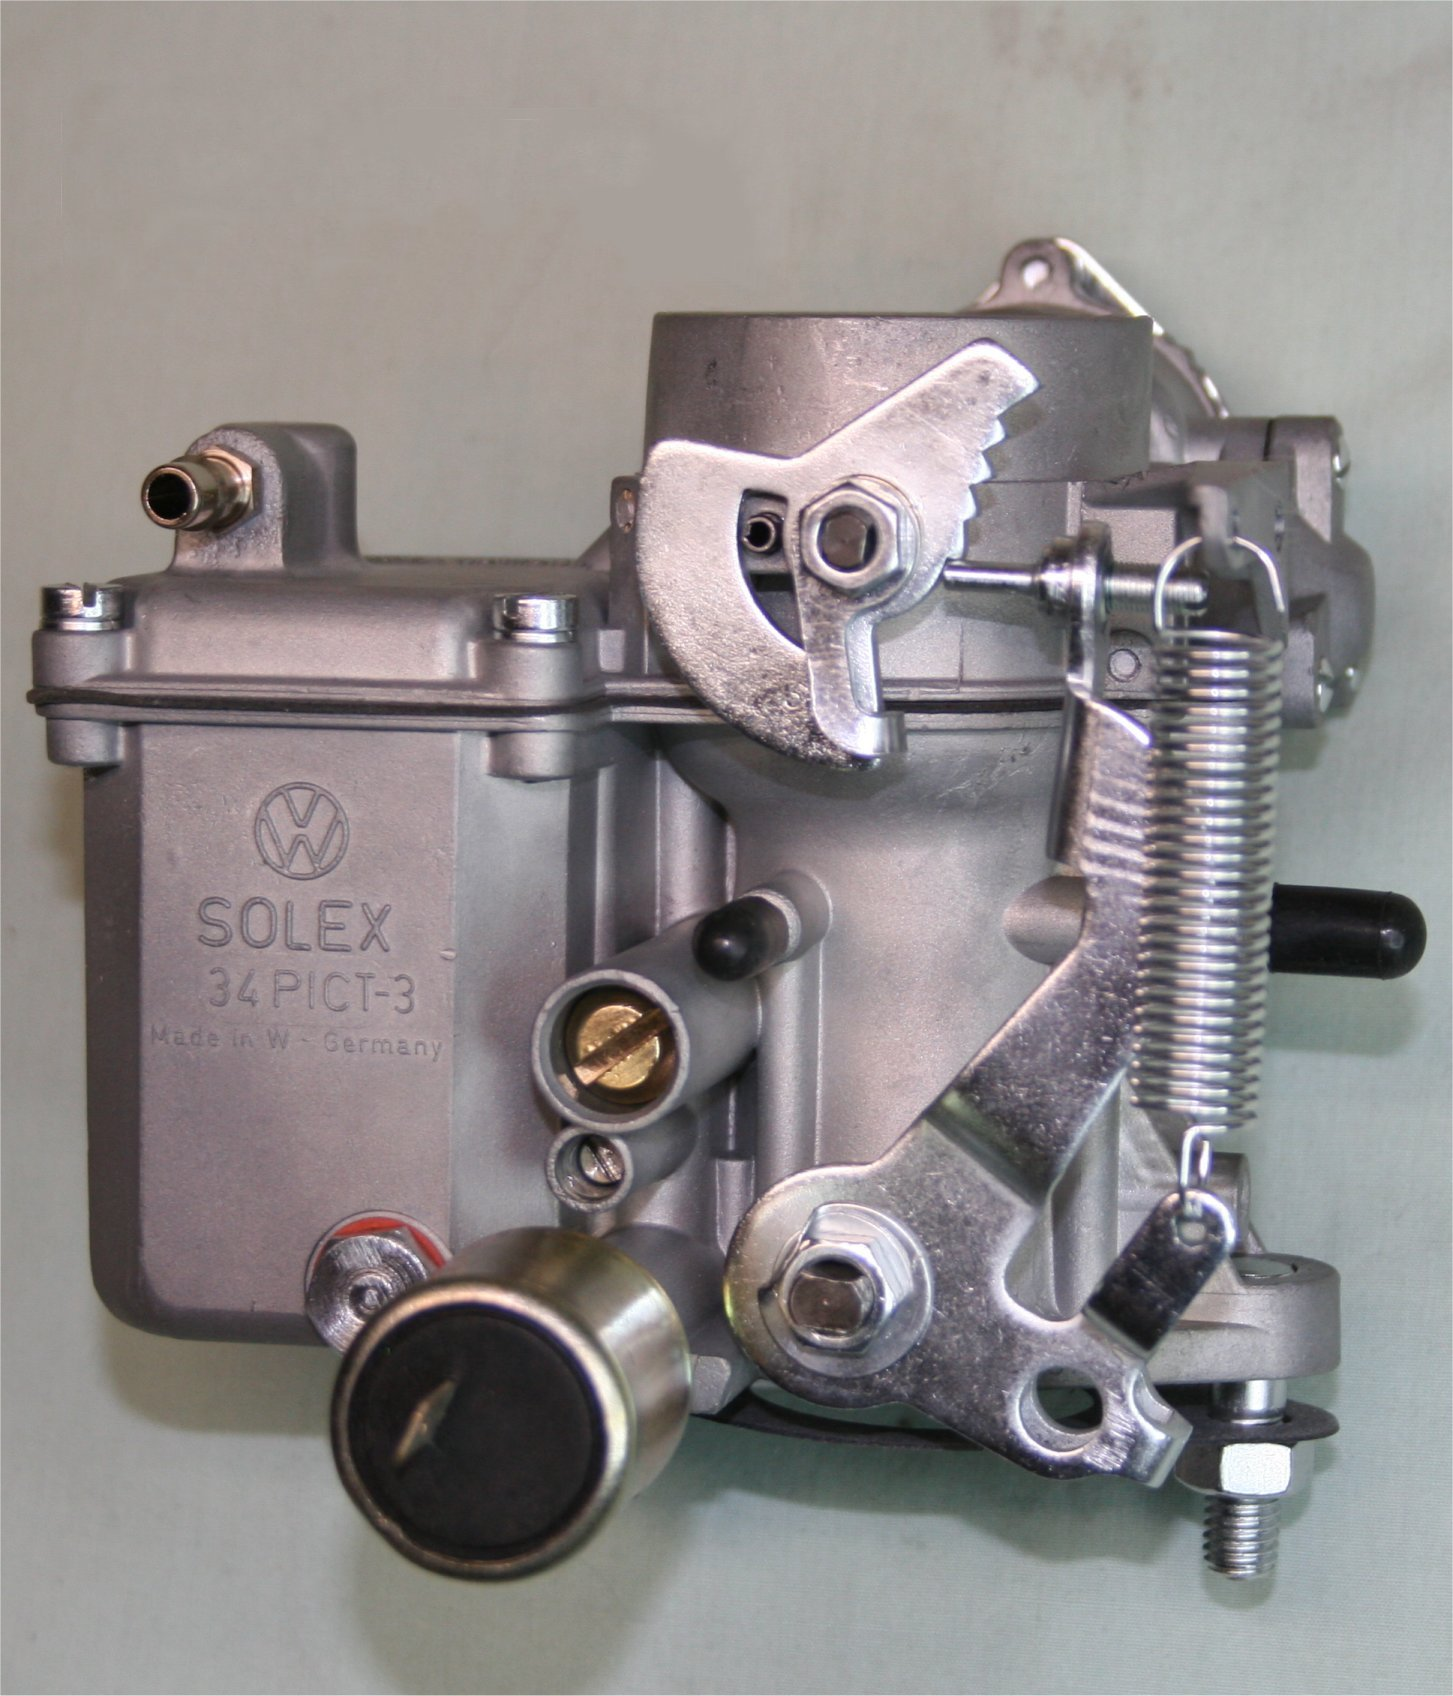 Vw Solex Pict Carburetor on 2001 vw beetle engine diagram